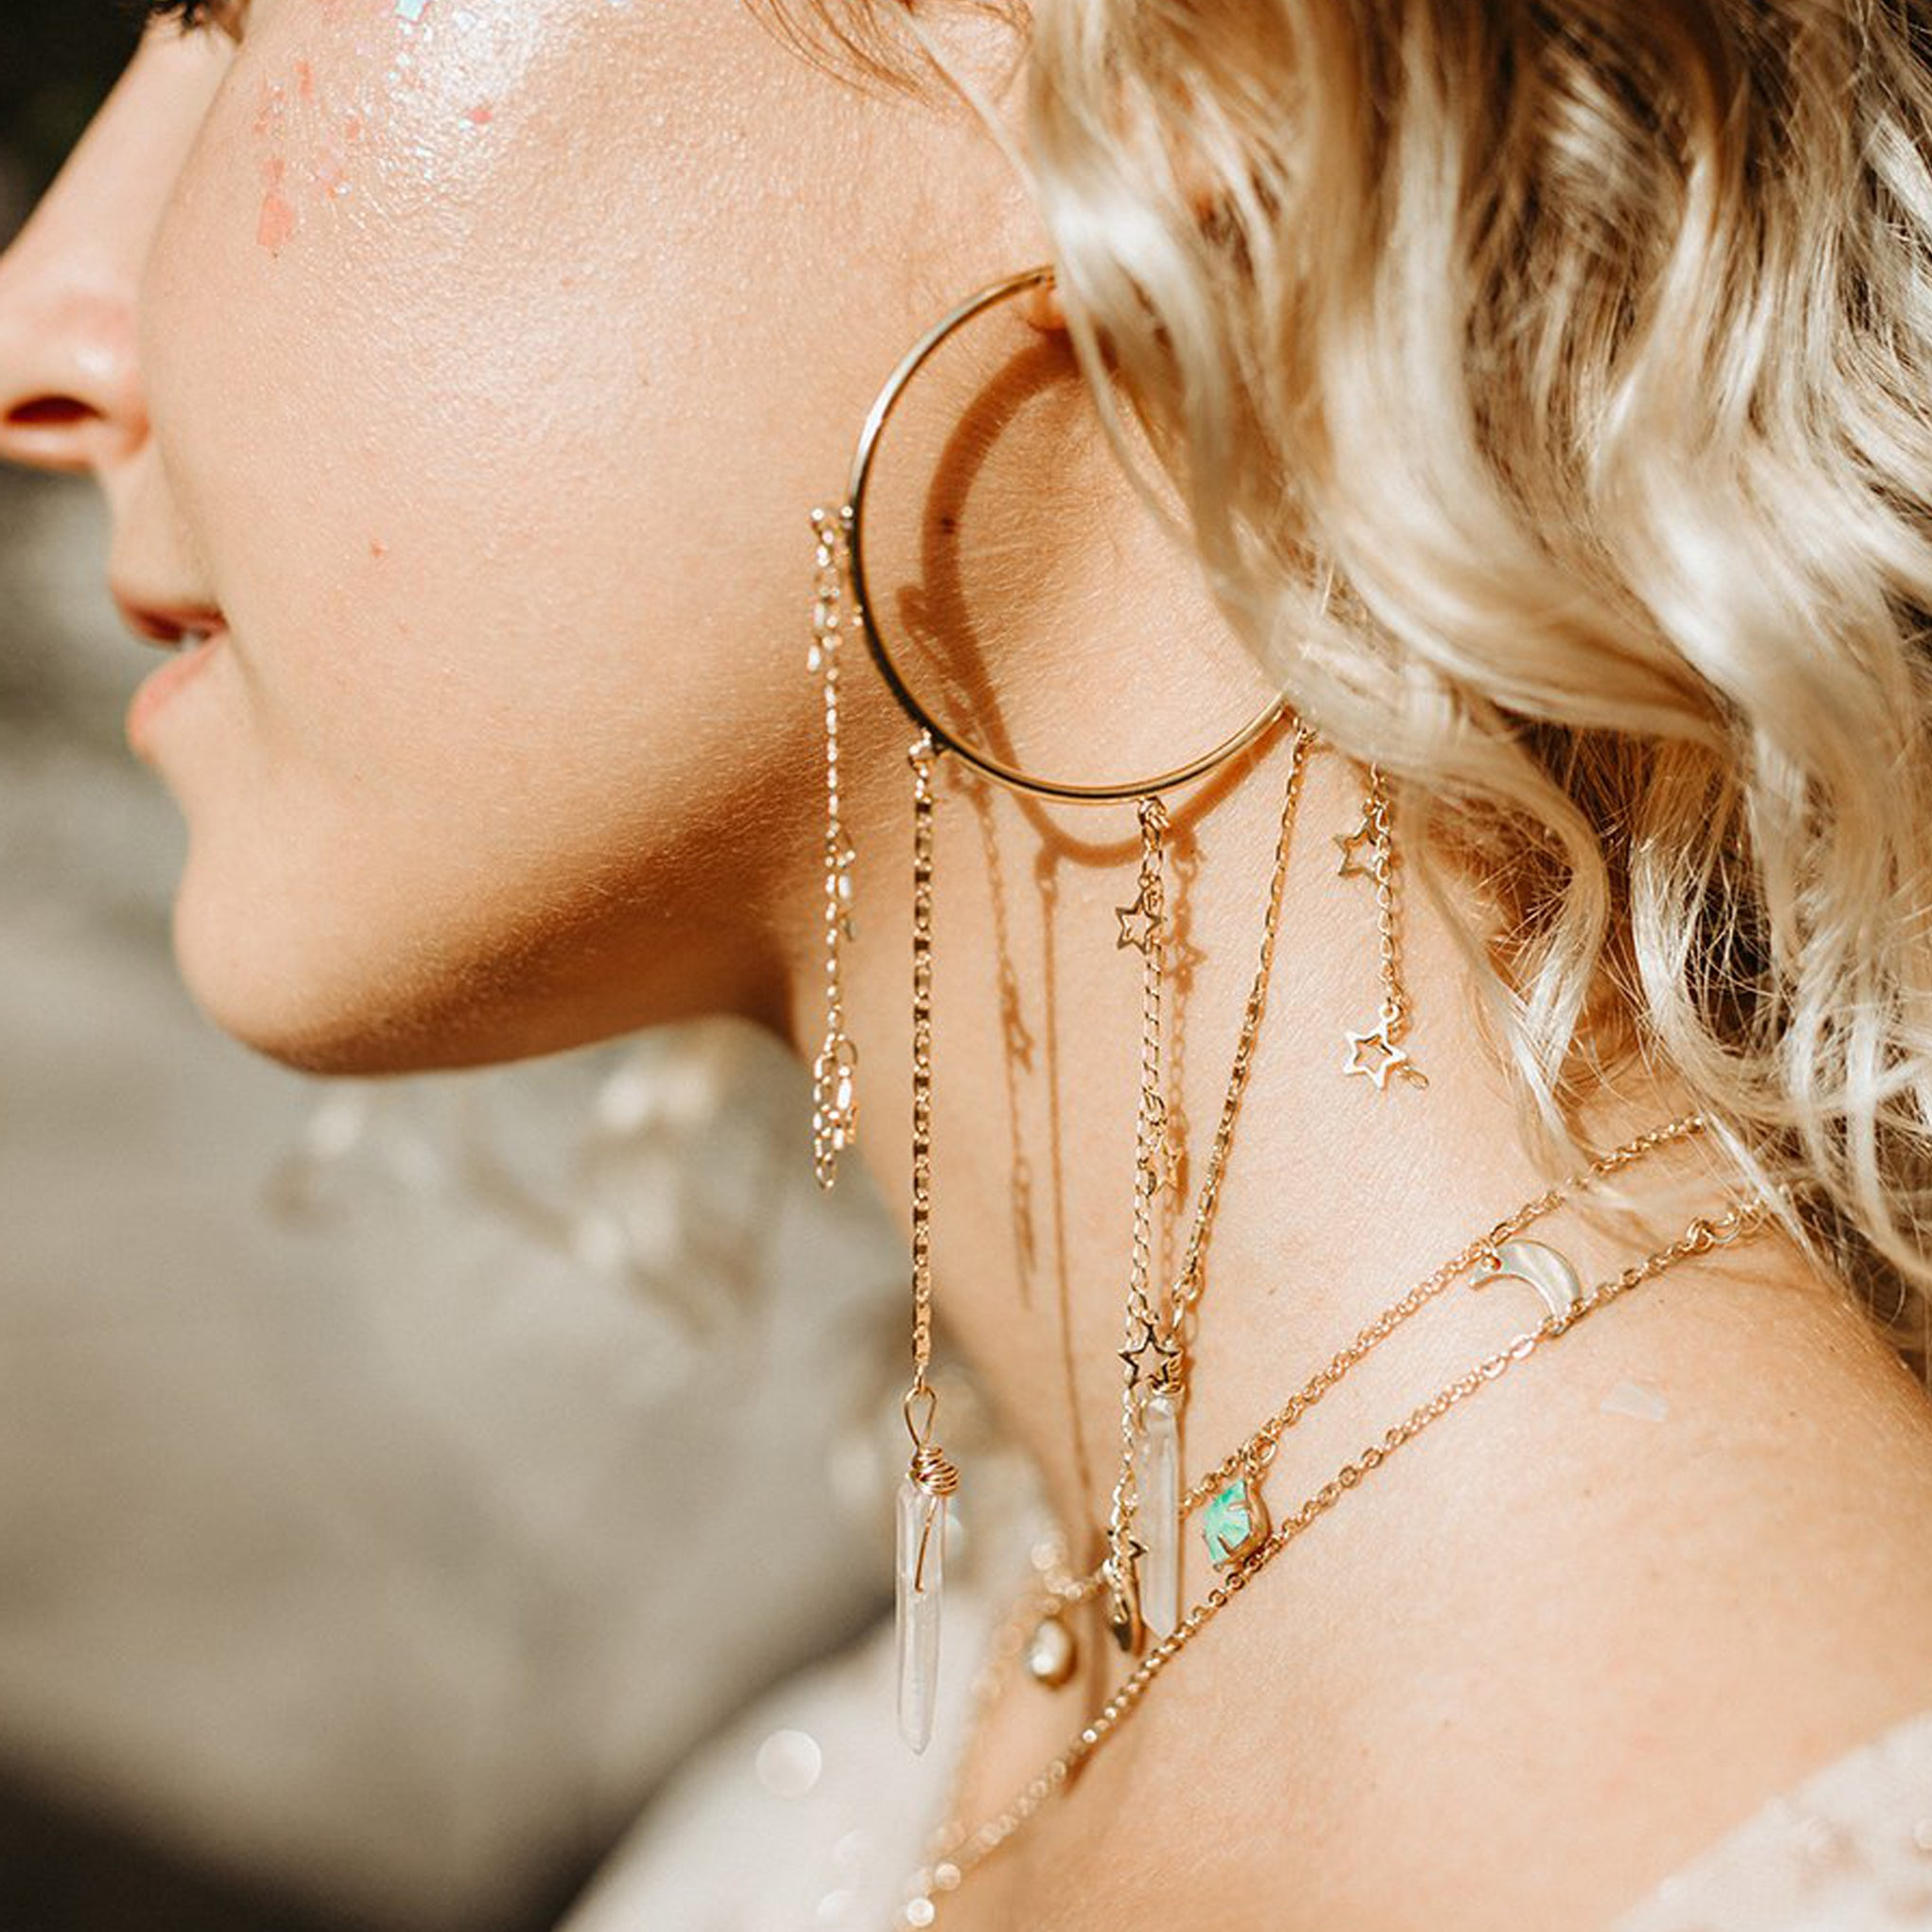 beautiful model wearing baddest bish ever fine jewelry dreamy dream catcher clear quartz crystal 16 karat gold earrings in dreamy dreams catcher collection